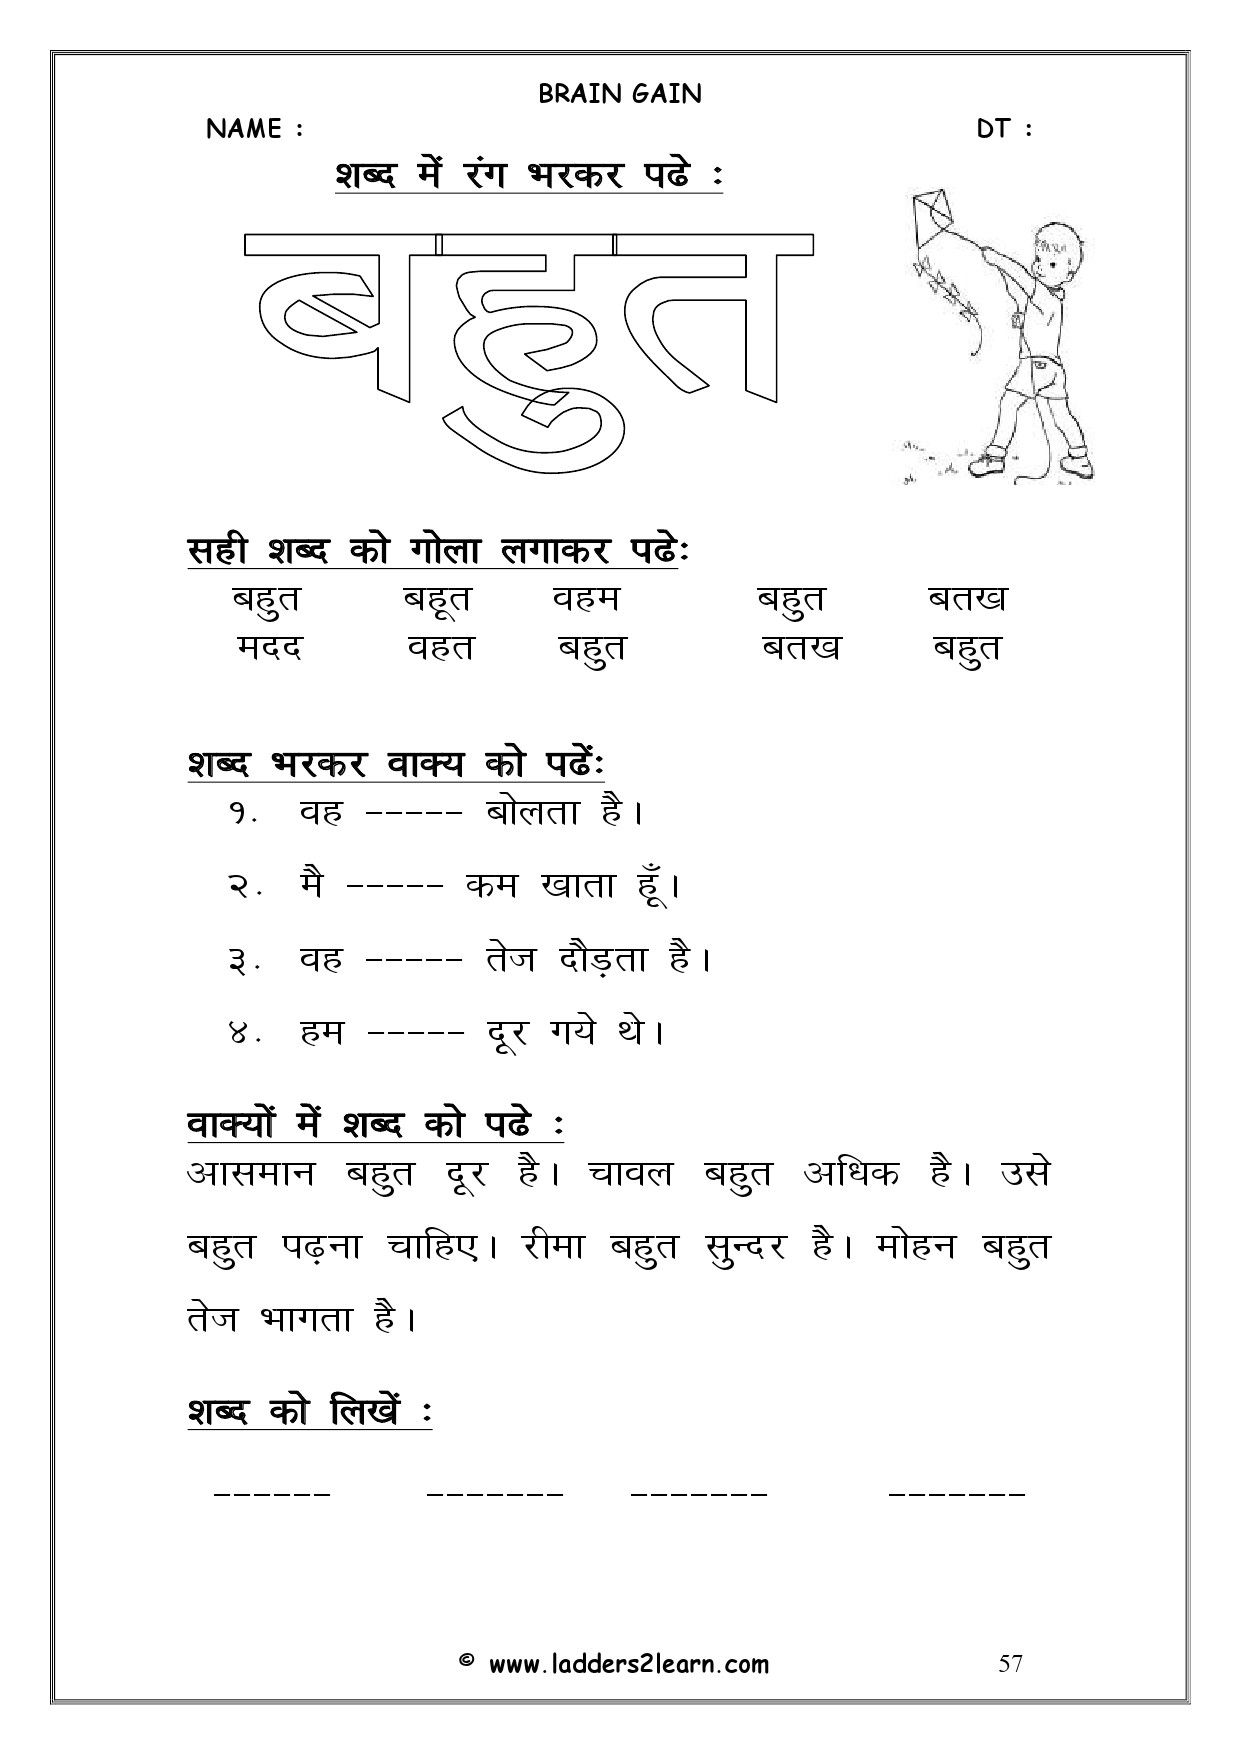 Learn Hindi 3 Letter Sight Words Learn Hindi Sight Words Hindi Worksheets [ 1754 x 1240 Pixel ]